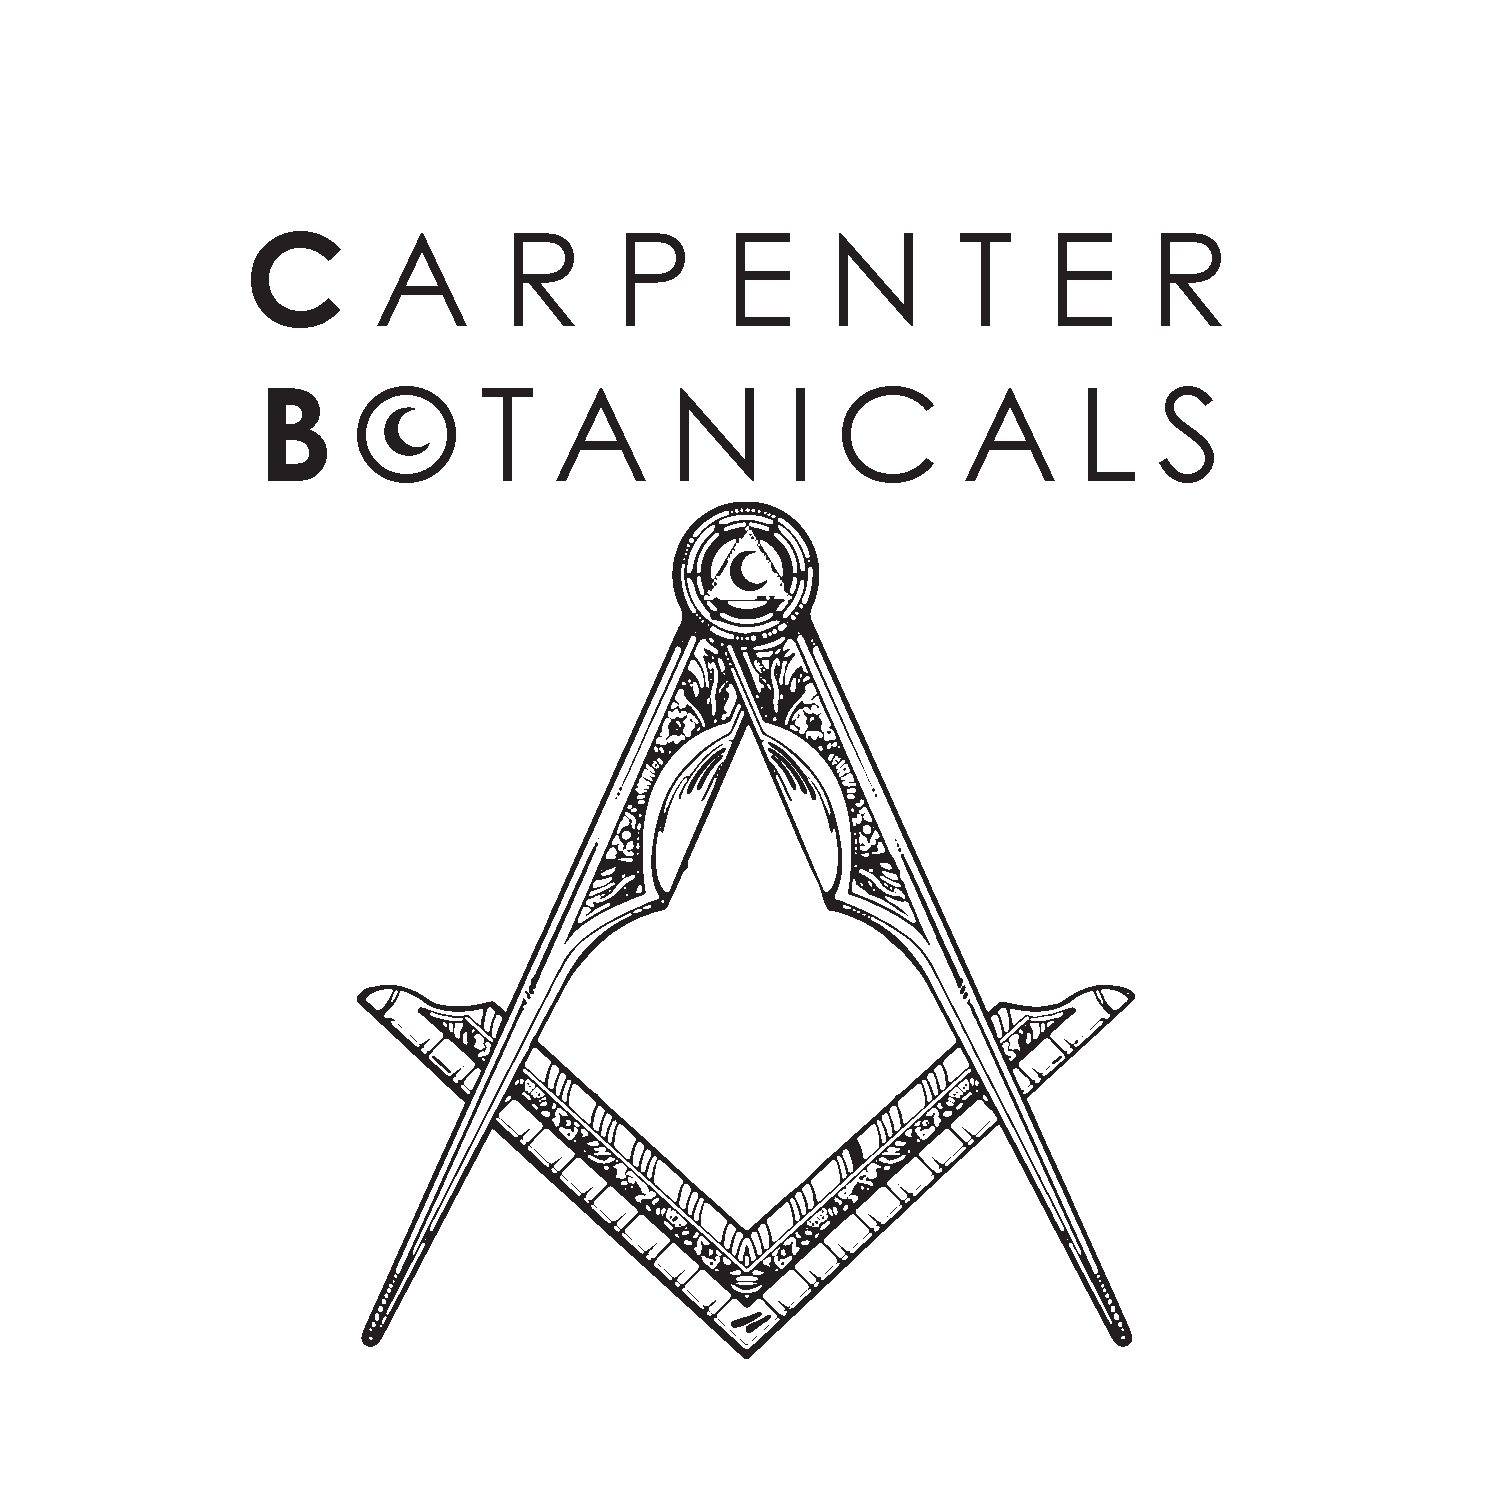 Carpenter Botanicals